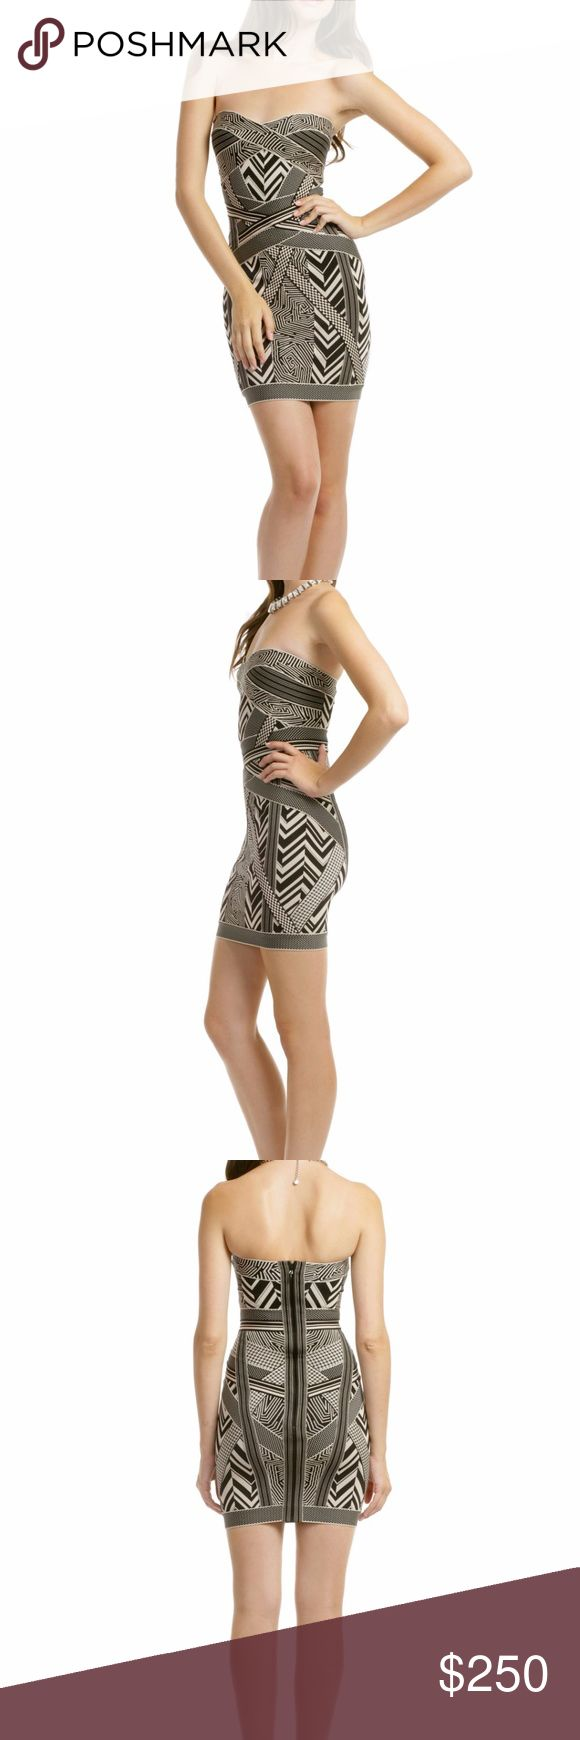 Herve Leger Bandage Geometric Jacquard Print Dress Herve Leger bandage dress, tribal print. black and tan, gently worn, will add photos of actual dress tonight! strapless dress with sweetheart neckline. NO TRADES As seen on Rihanna! Herve Leger Dresses Strapless